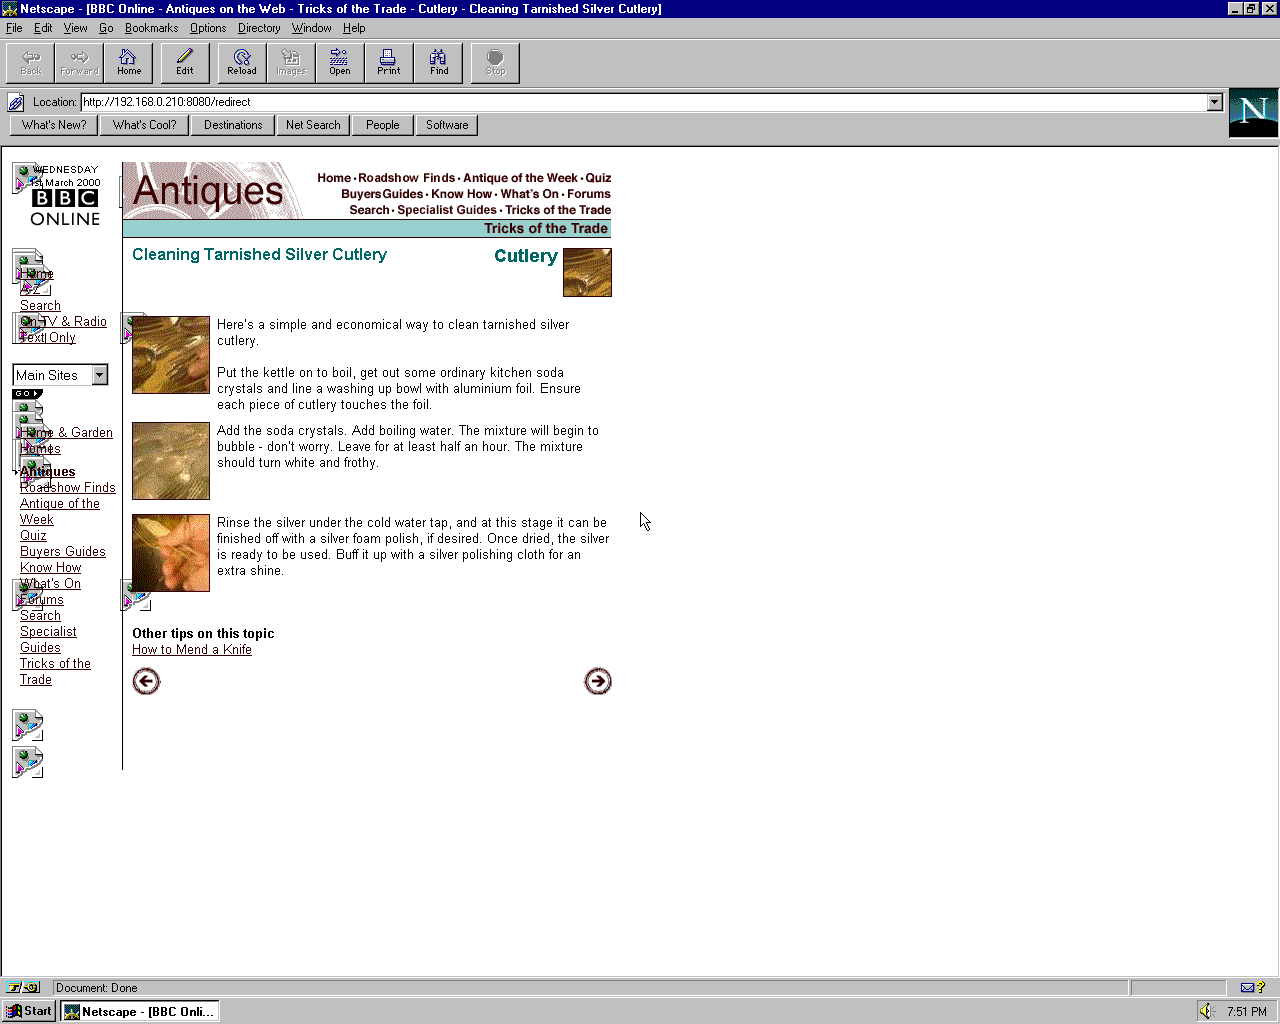 Windows 95 OSR2 x86 with Netscape Navigator 3.0 Gold displaying a page from BBC.co.uk archived at March 01, 2000 at 05:29:34